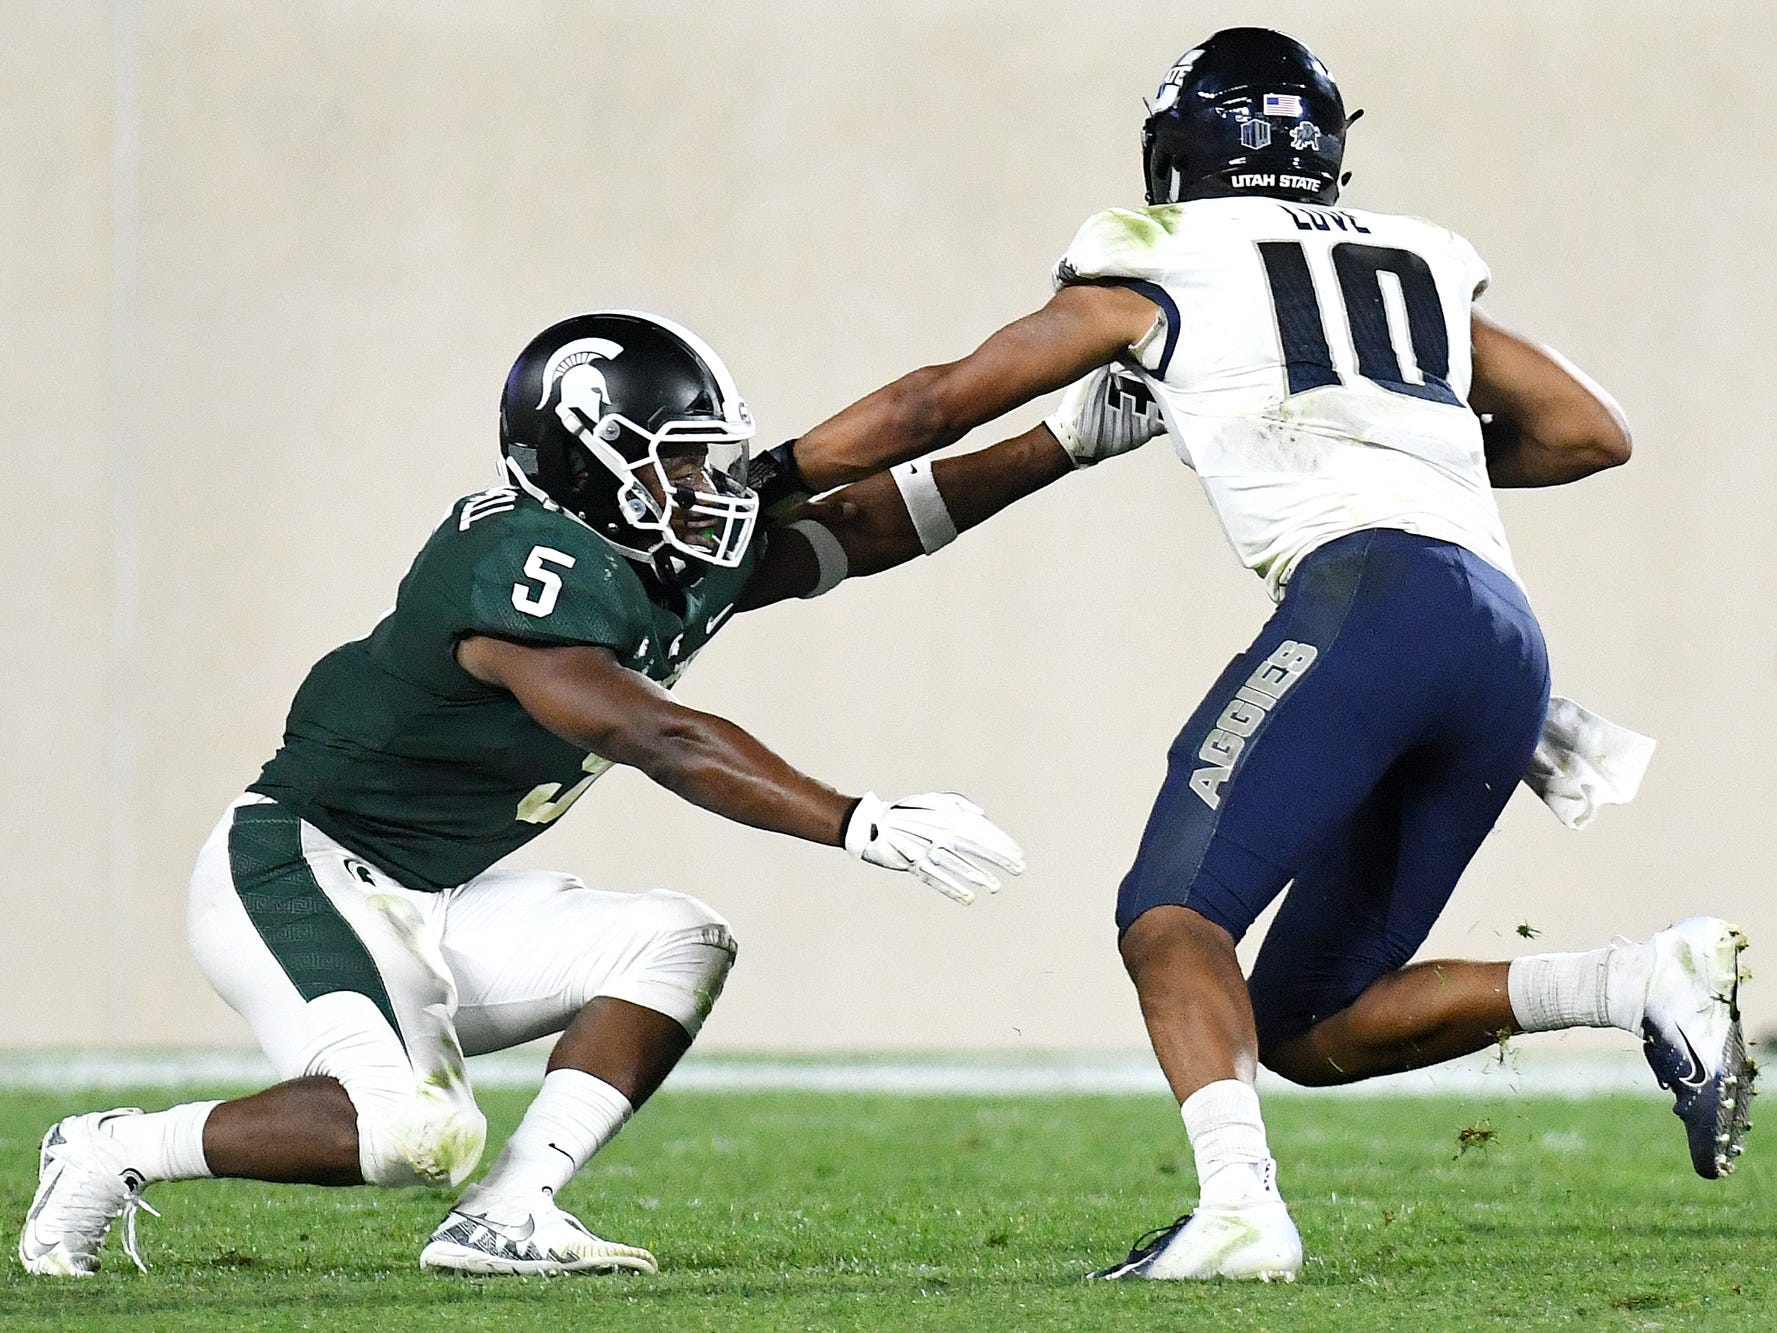 Michigan State's Andrew Dowell, left, closes in on Utah State's Jordan Love during the fourth quarter on Friday, Aug. 31, 2018, at Spartan Stadium in East Lansing.